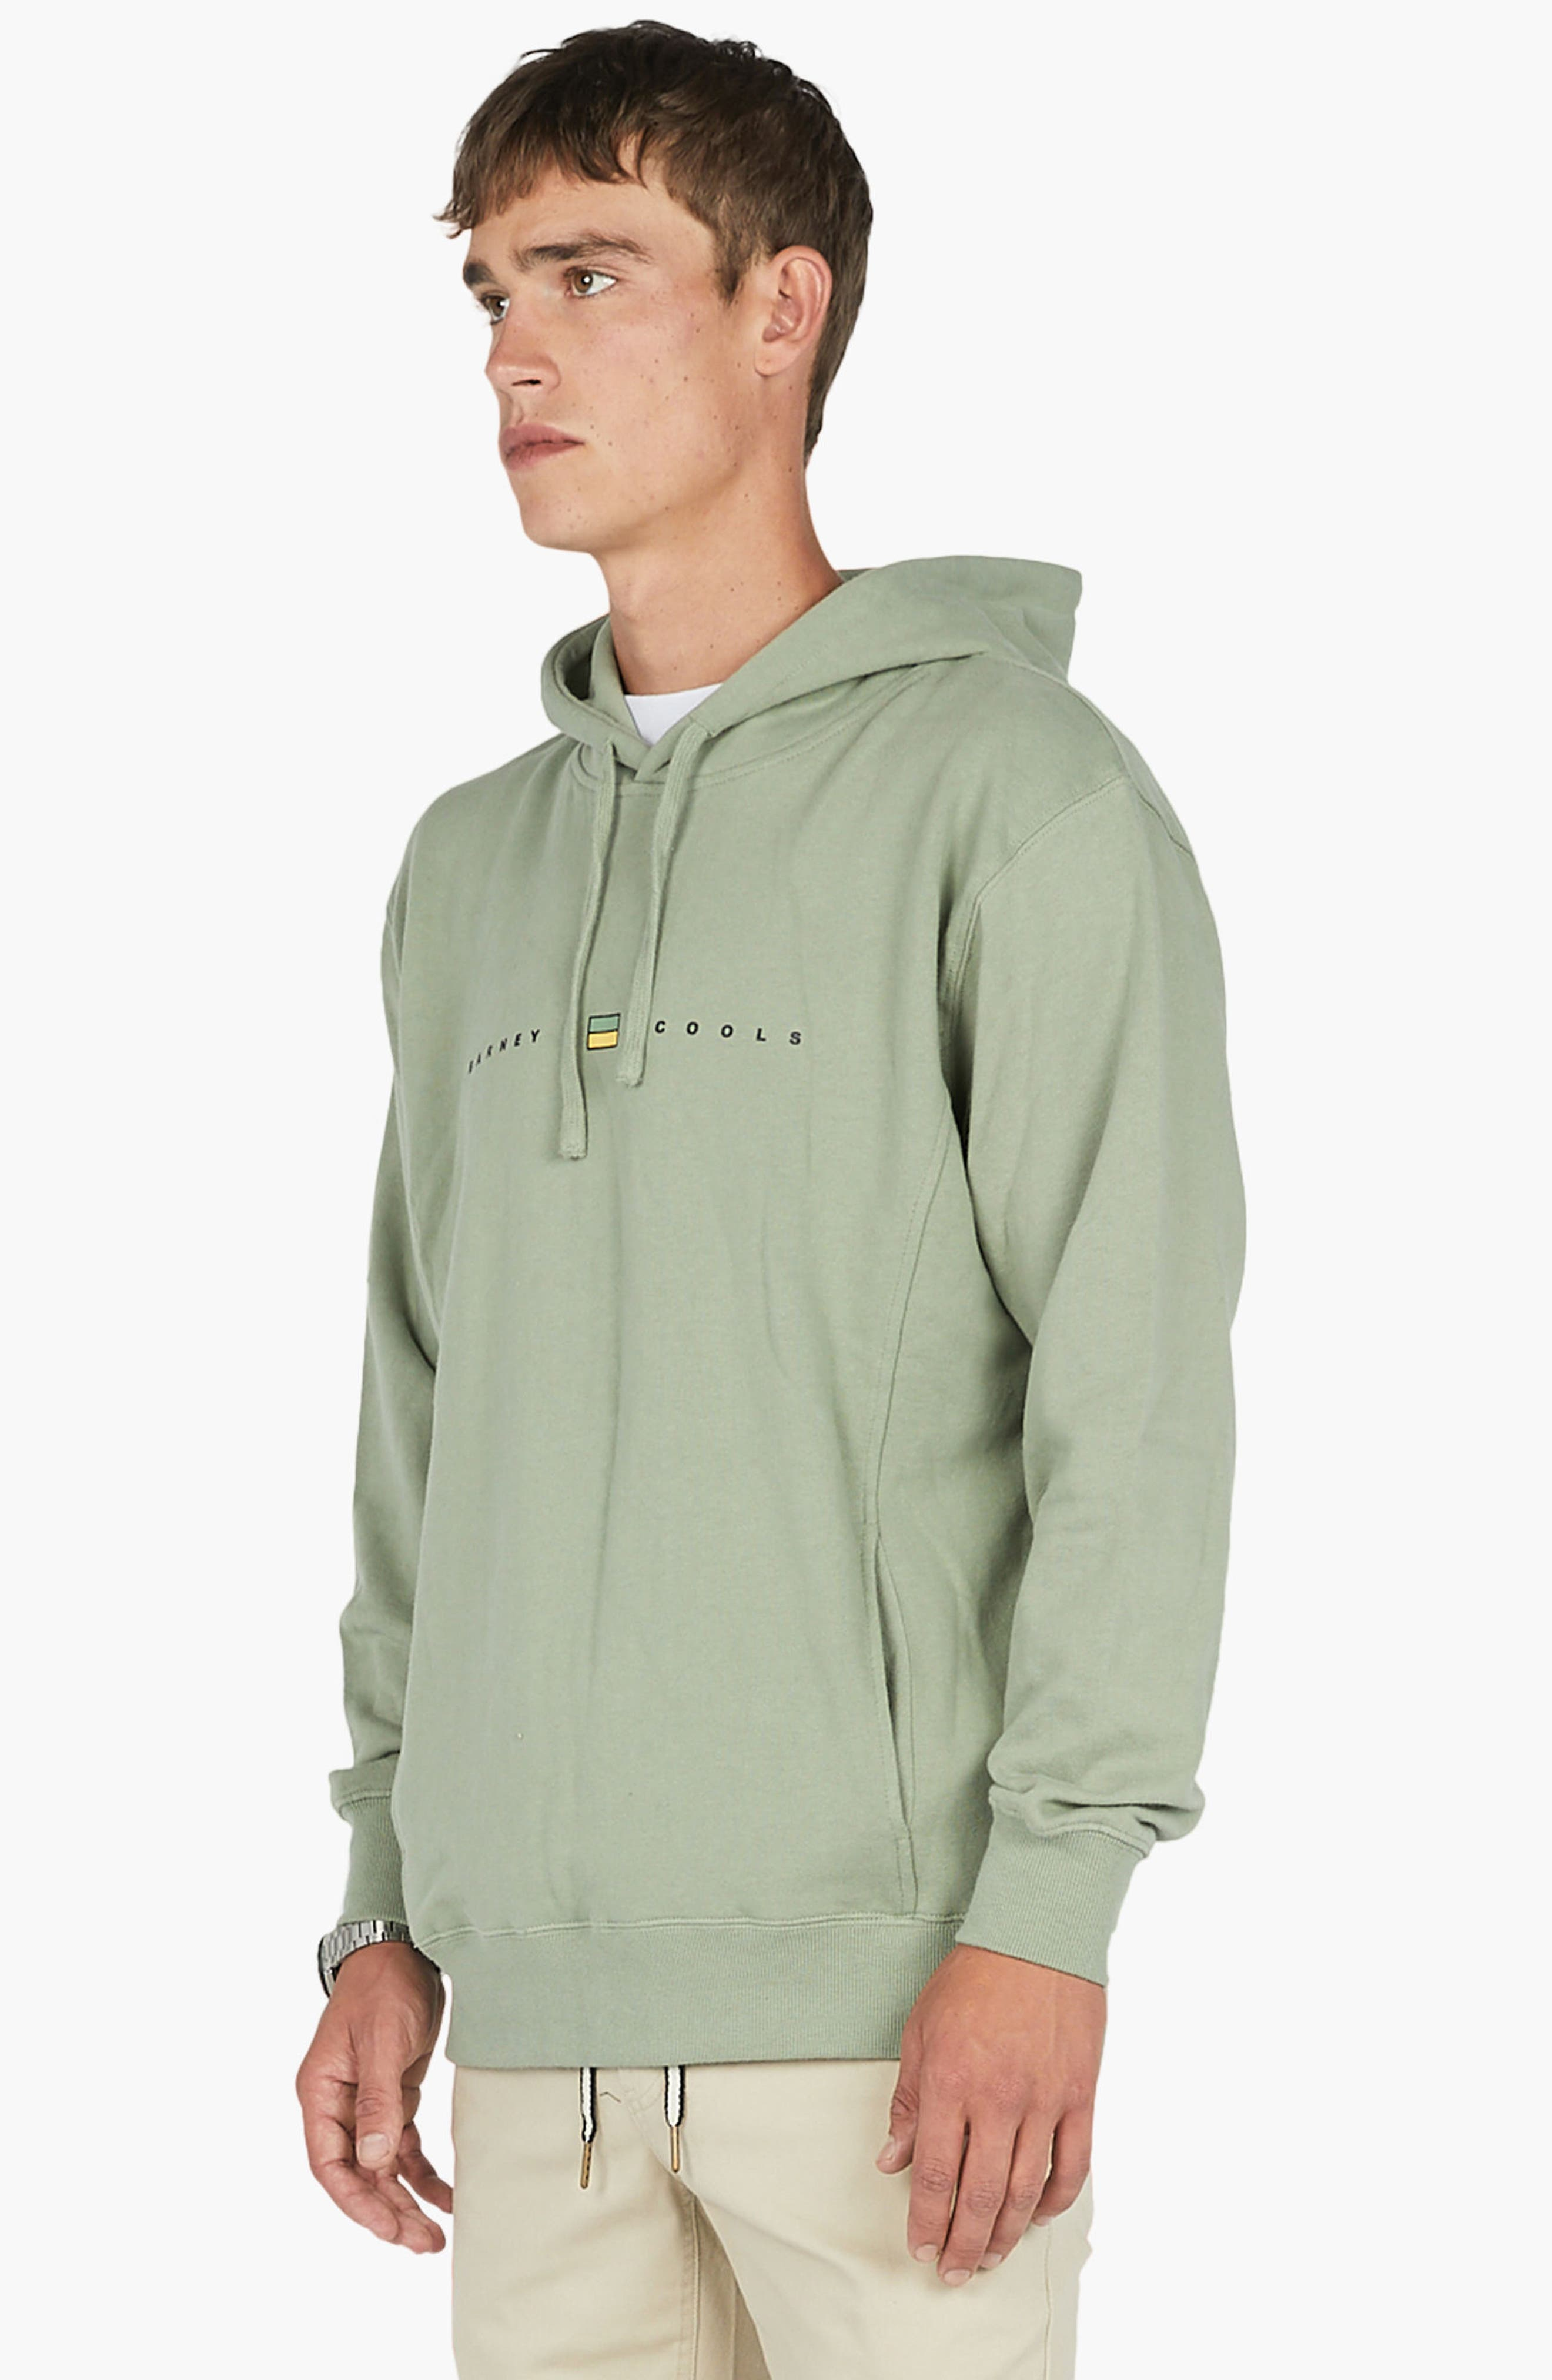 B. Cause Hoodie,                             Alternate thumbnail 4, color,                             311